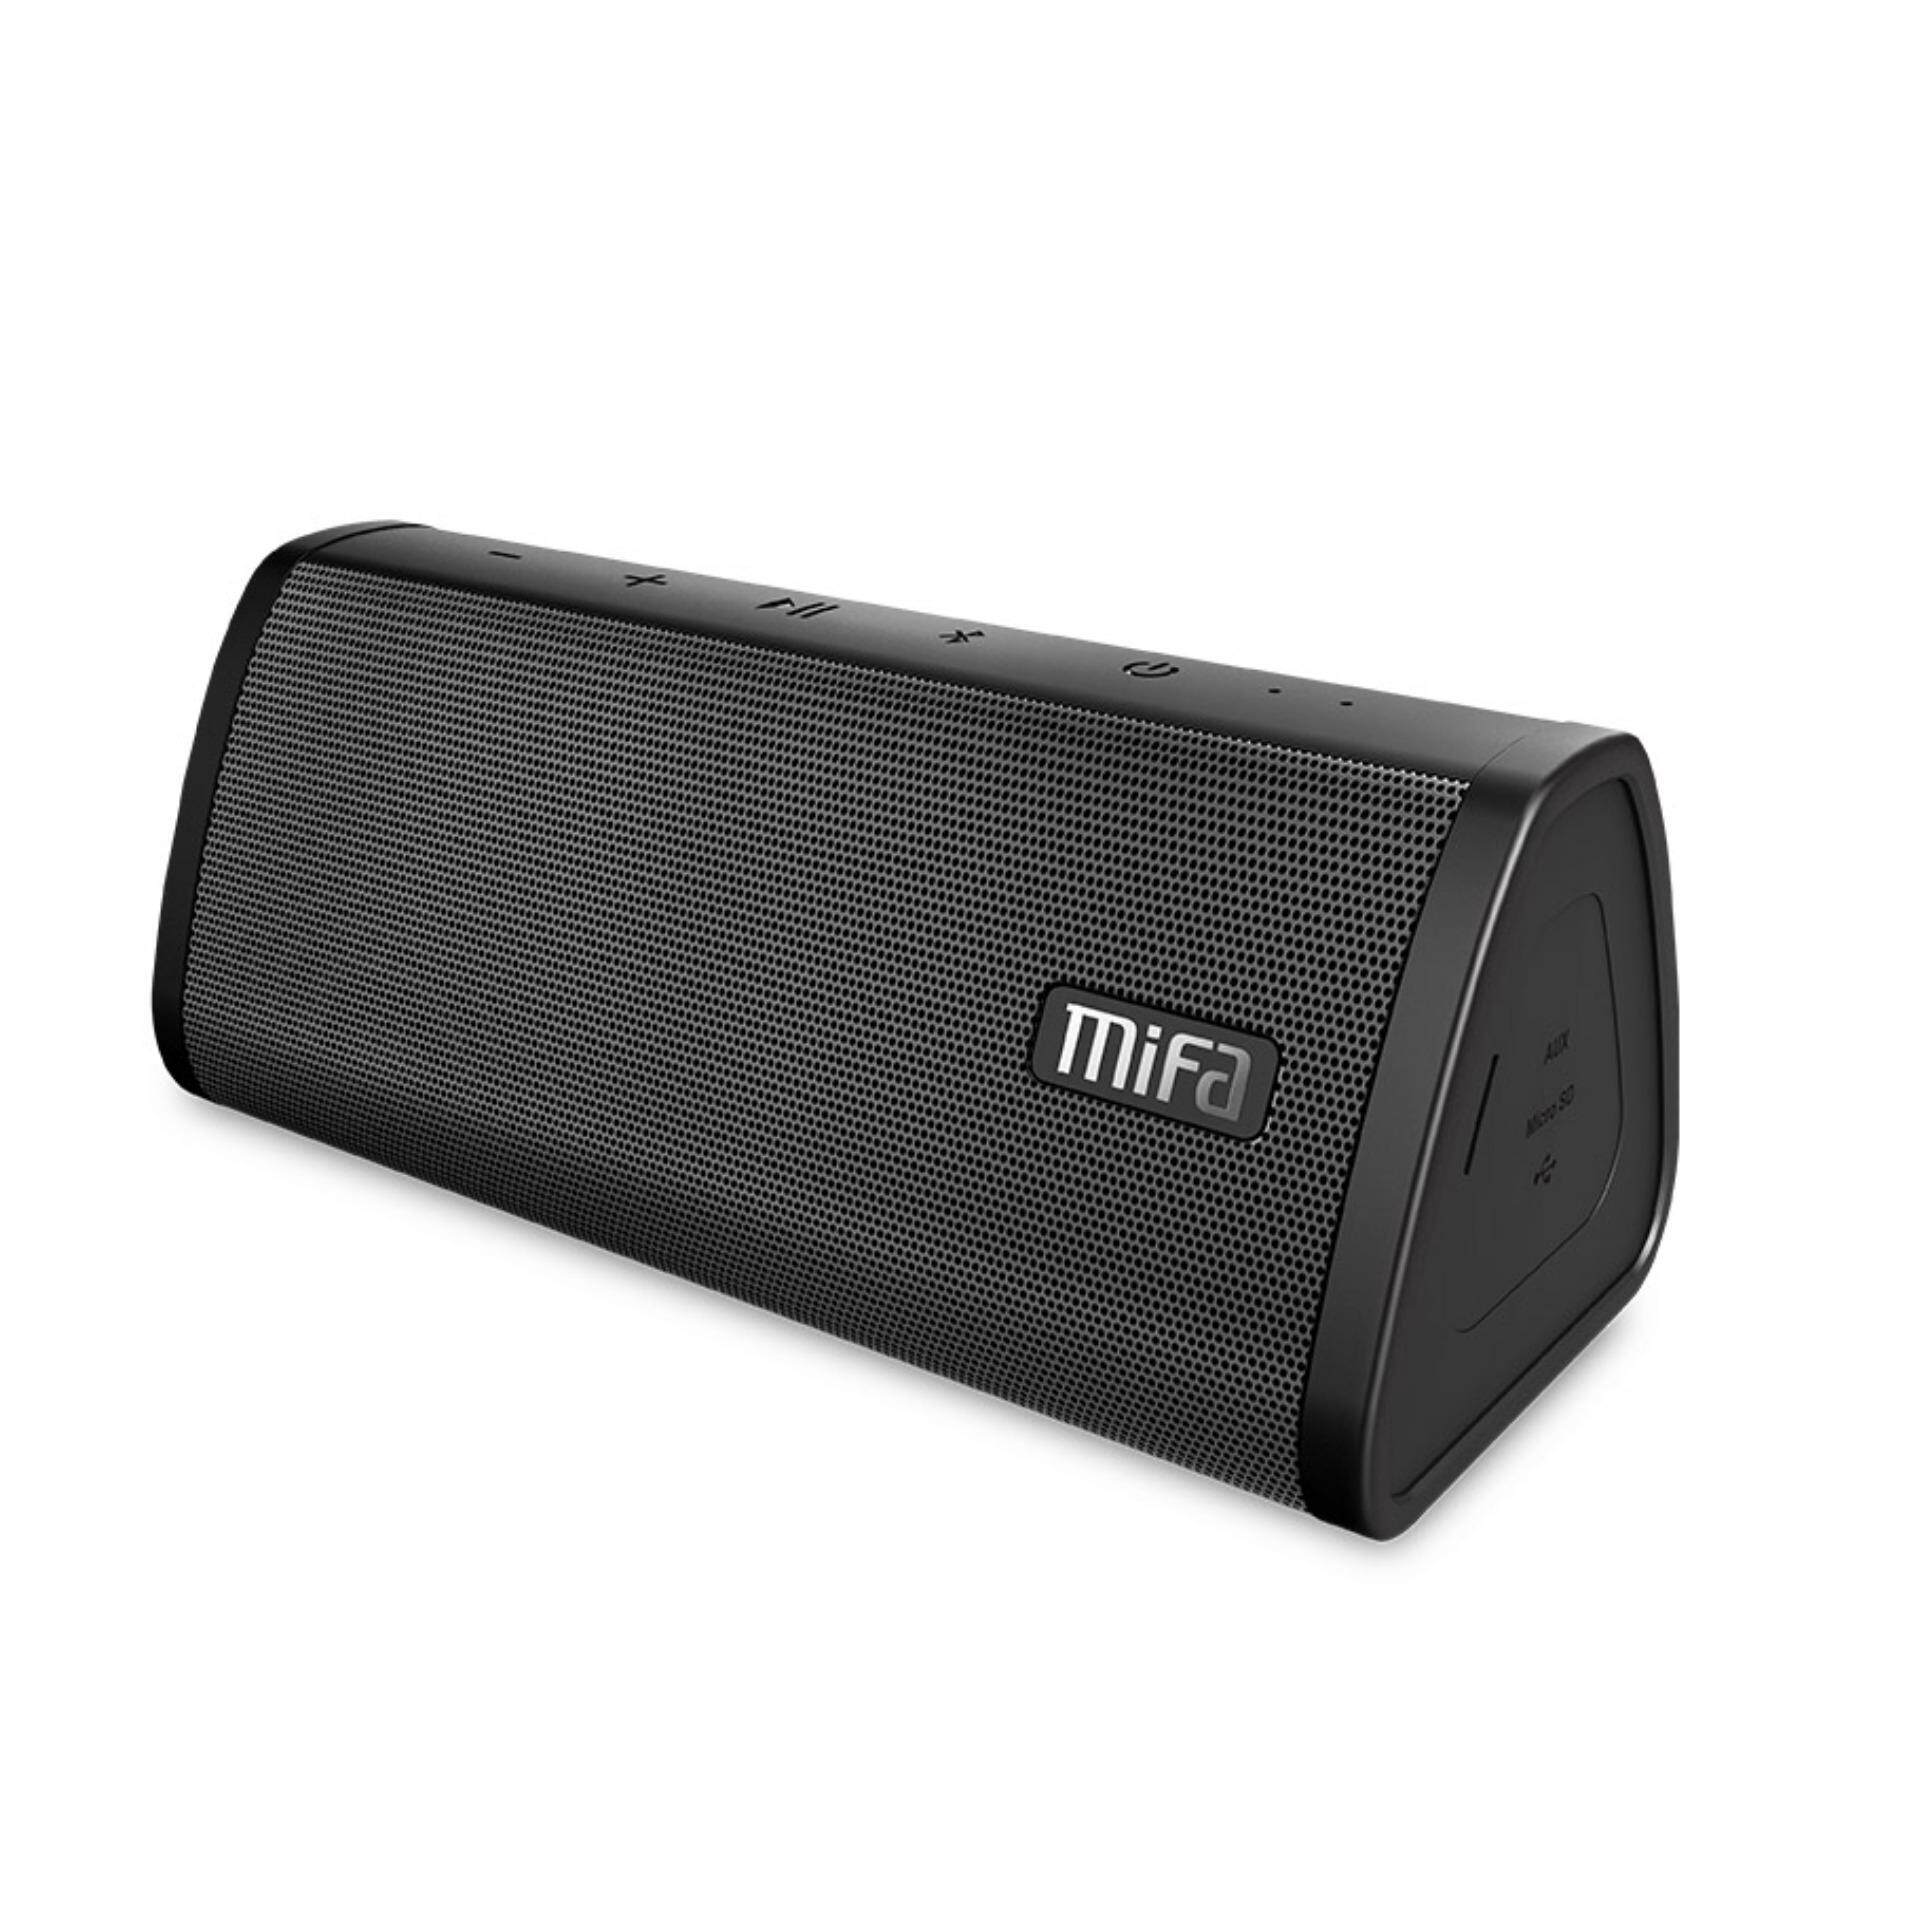 [24 Month Warranty]mifa A10 Wireless Bluetooth Speaker, 16-Hour Playtime, Ip45 Dustproof & Water-Resistant, 10w Rated Power Hd Stereo Sound & Enhanced Bass, Support Tws, Built-In Mic, Micro Sd Card Slot(black) By Mifa Store